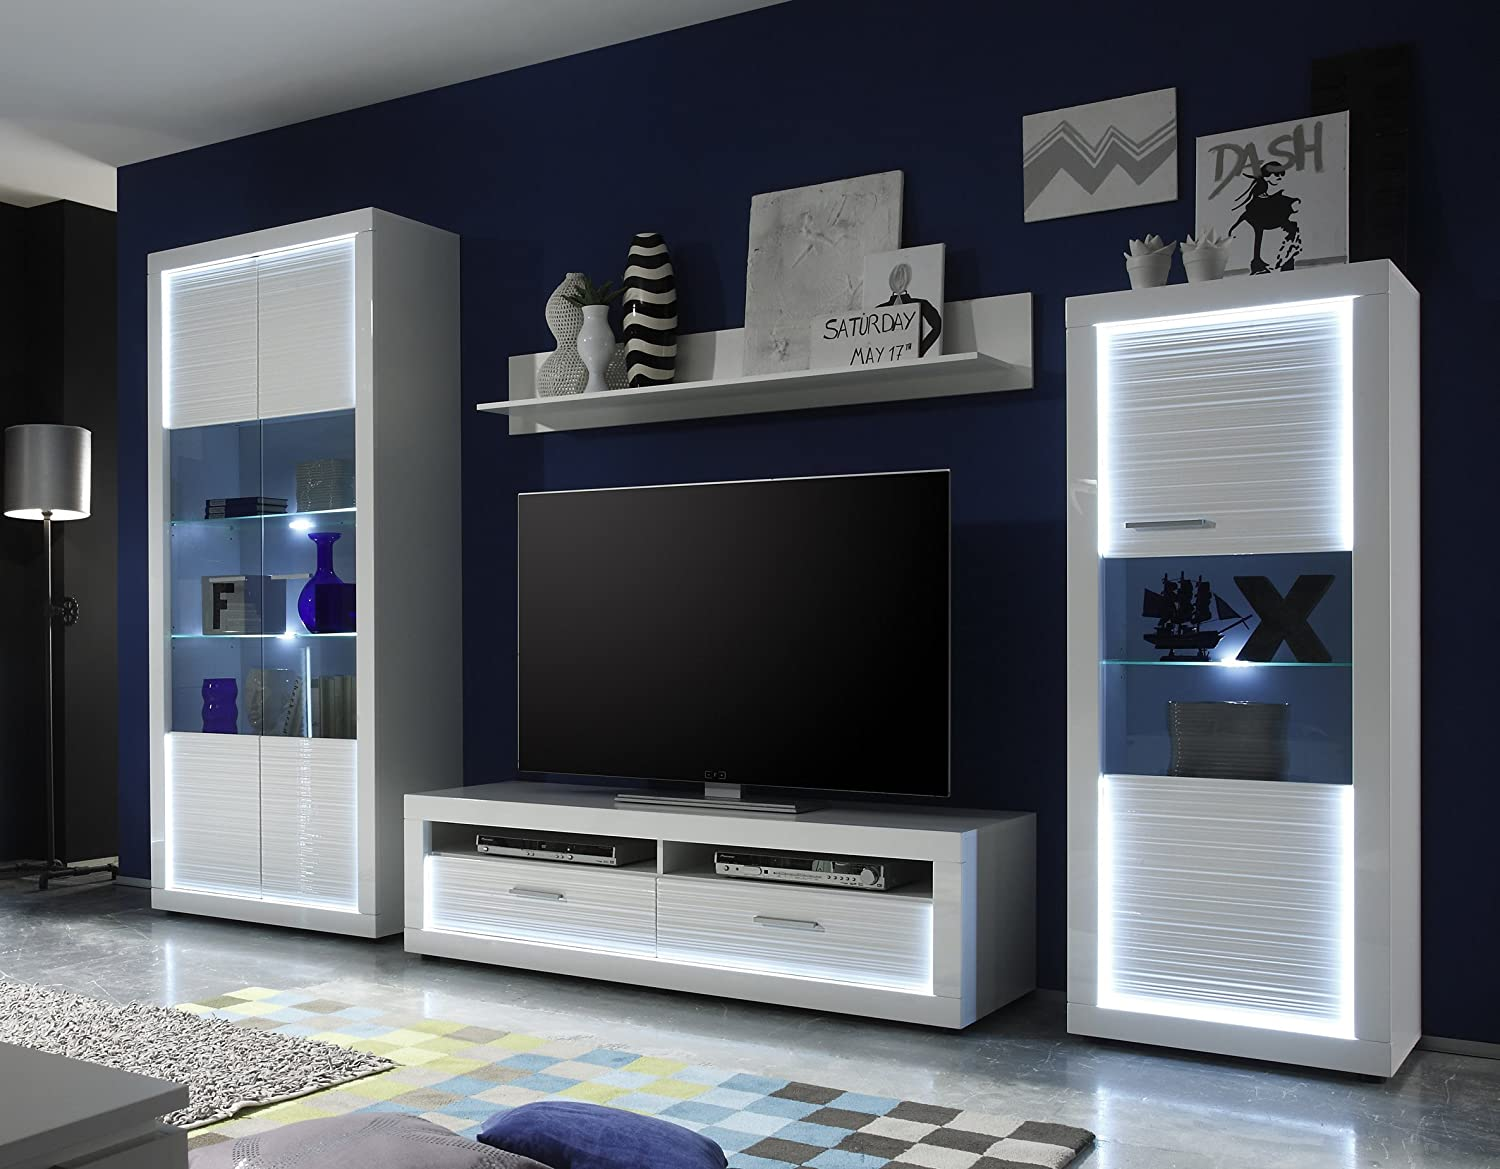 wohnwand weiss hochglanz rillenoptik weiss nachbildung online bestellen. Black Bedroom Furniture Sets. Home Design Ideas